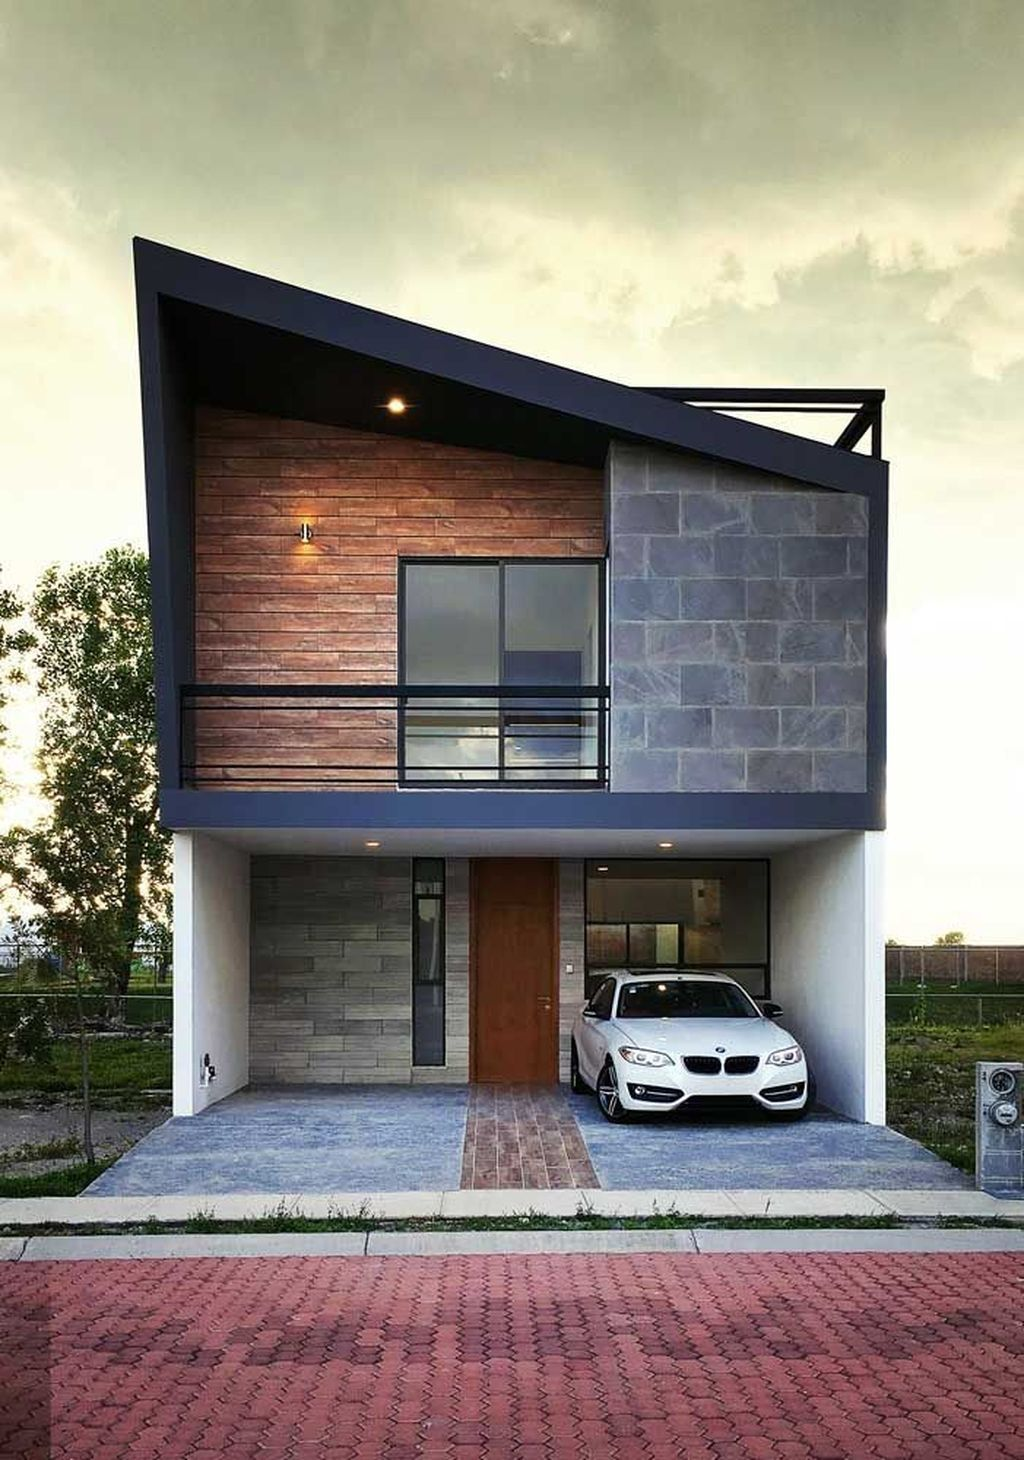 Architettura Case Moderne Idee 38 awesome small contemporary house designs ideas to try